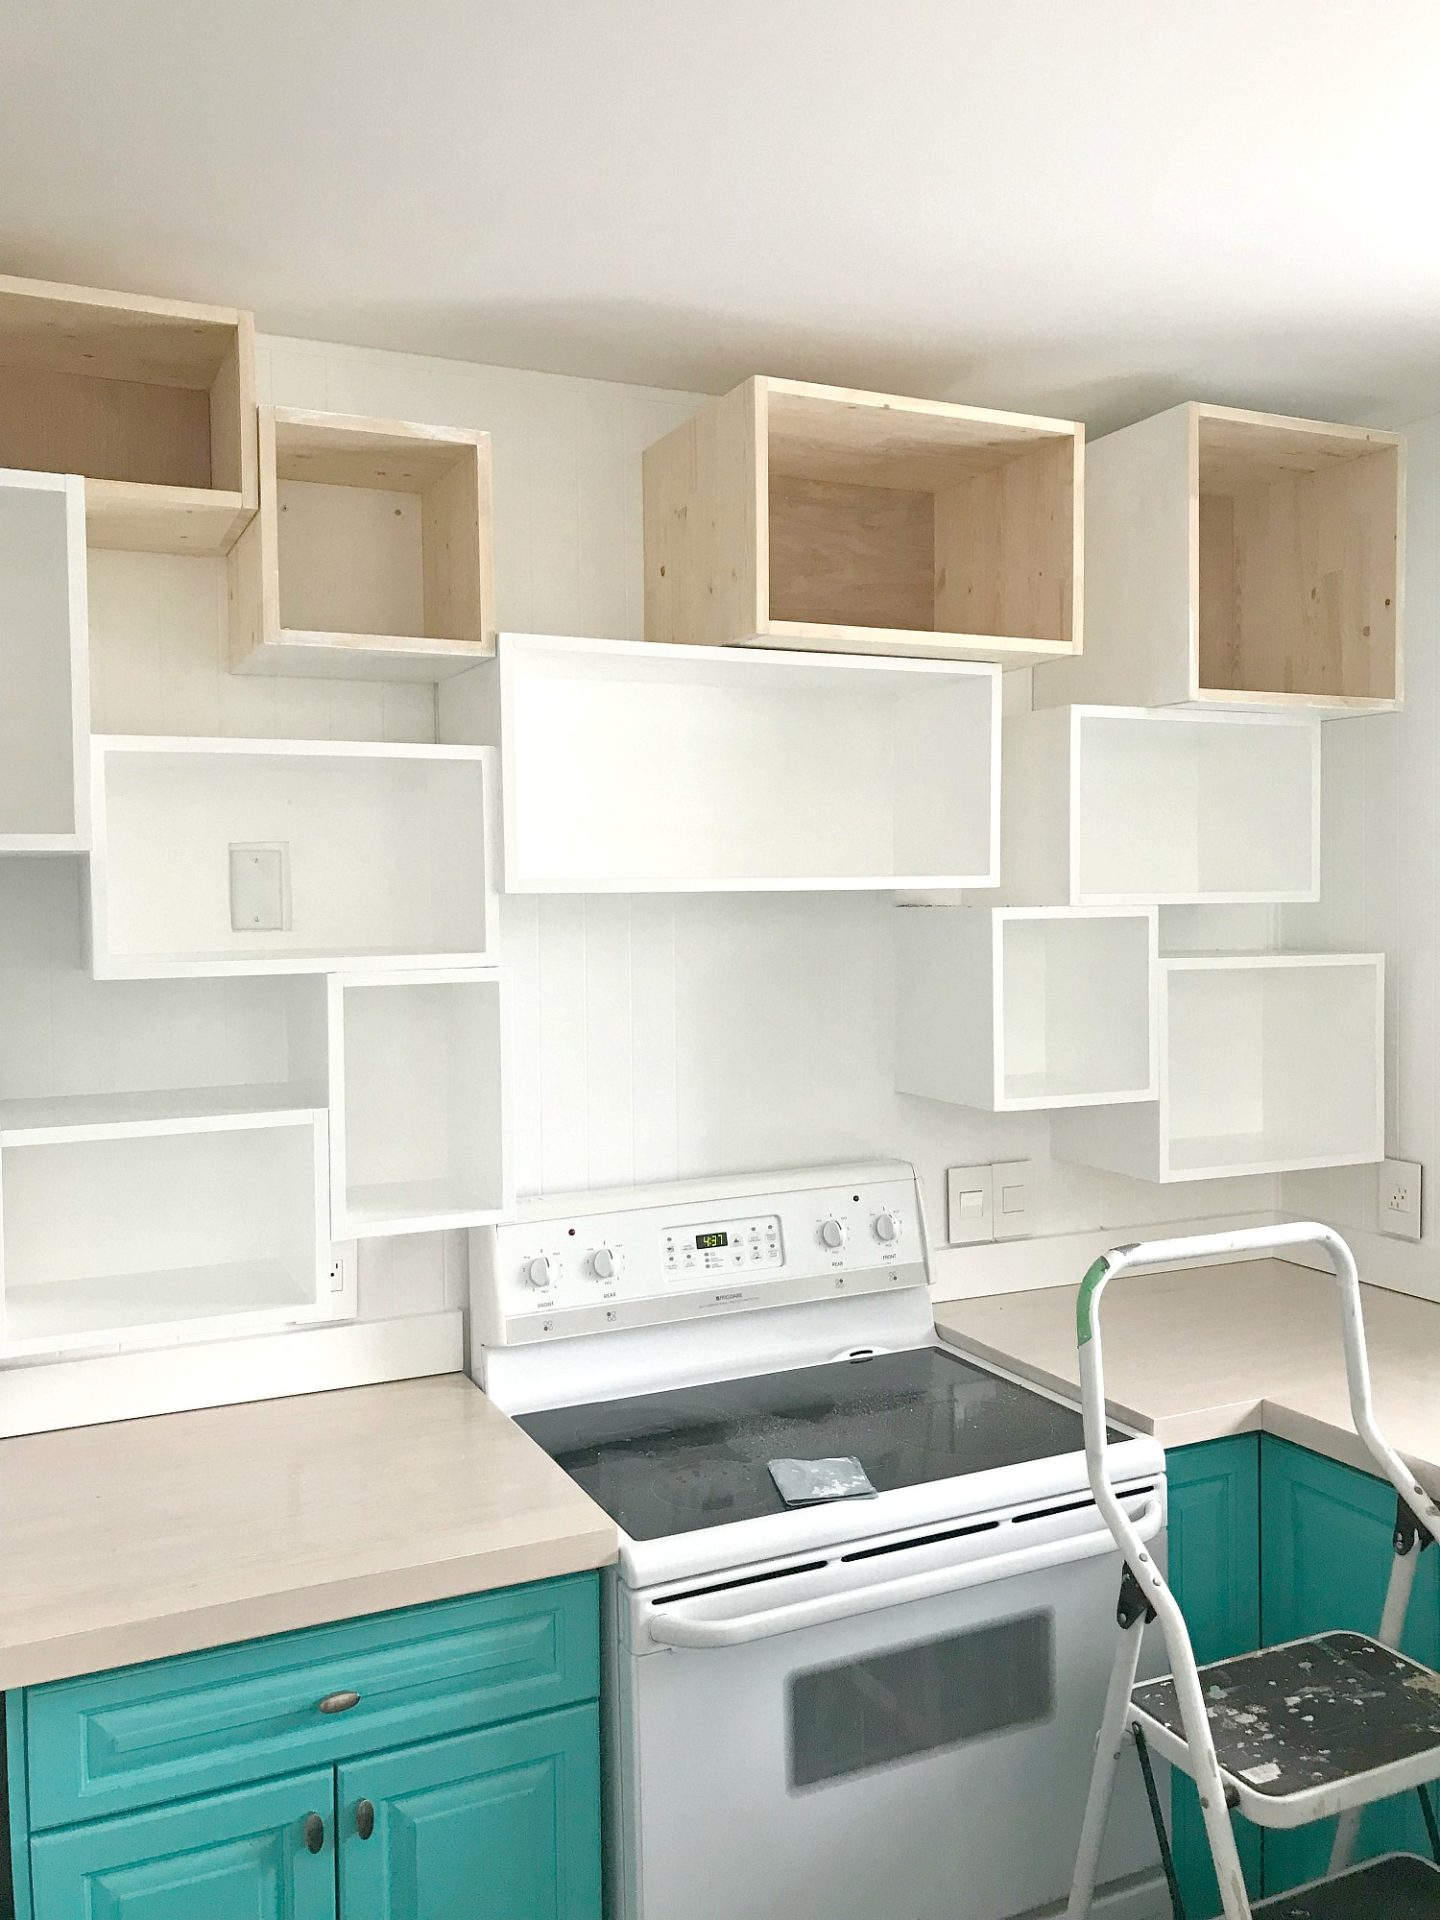 How to install kitchen wall cubbies for cute open shelving ideas